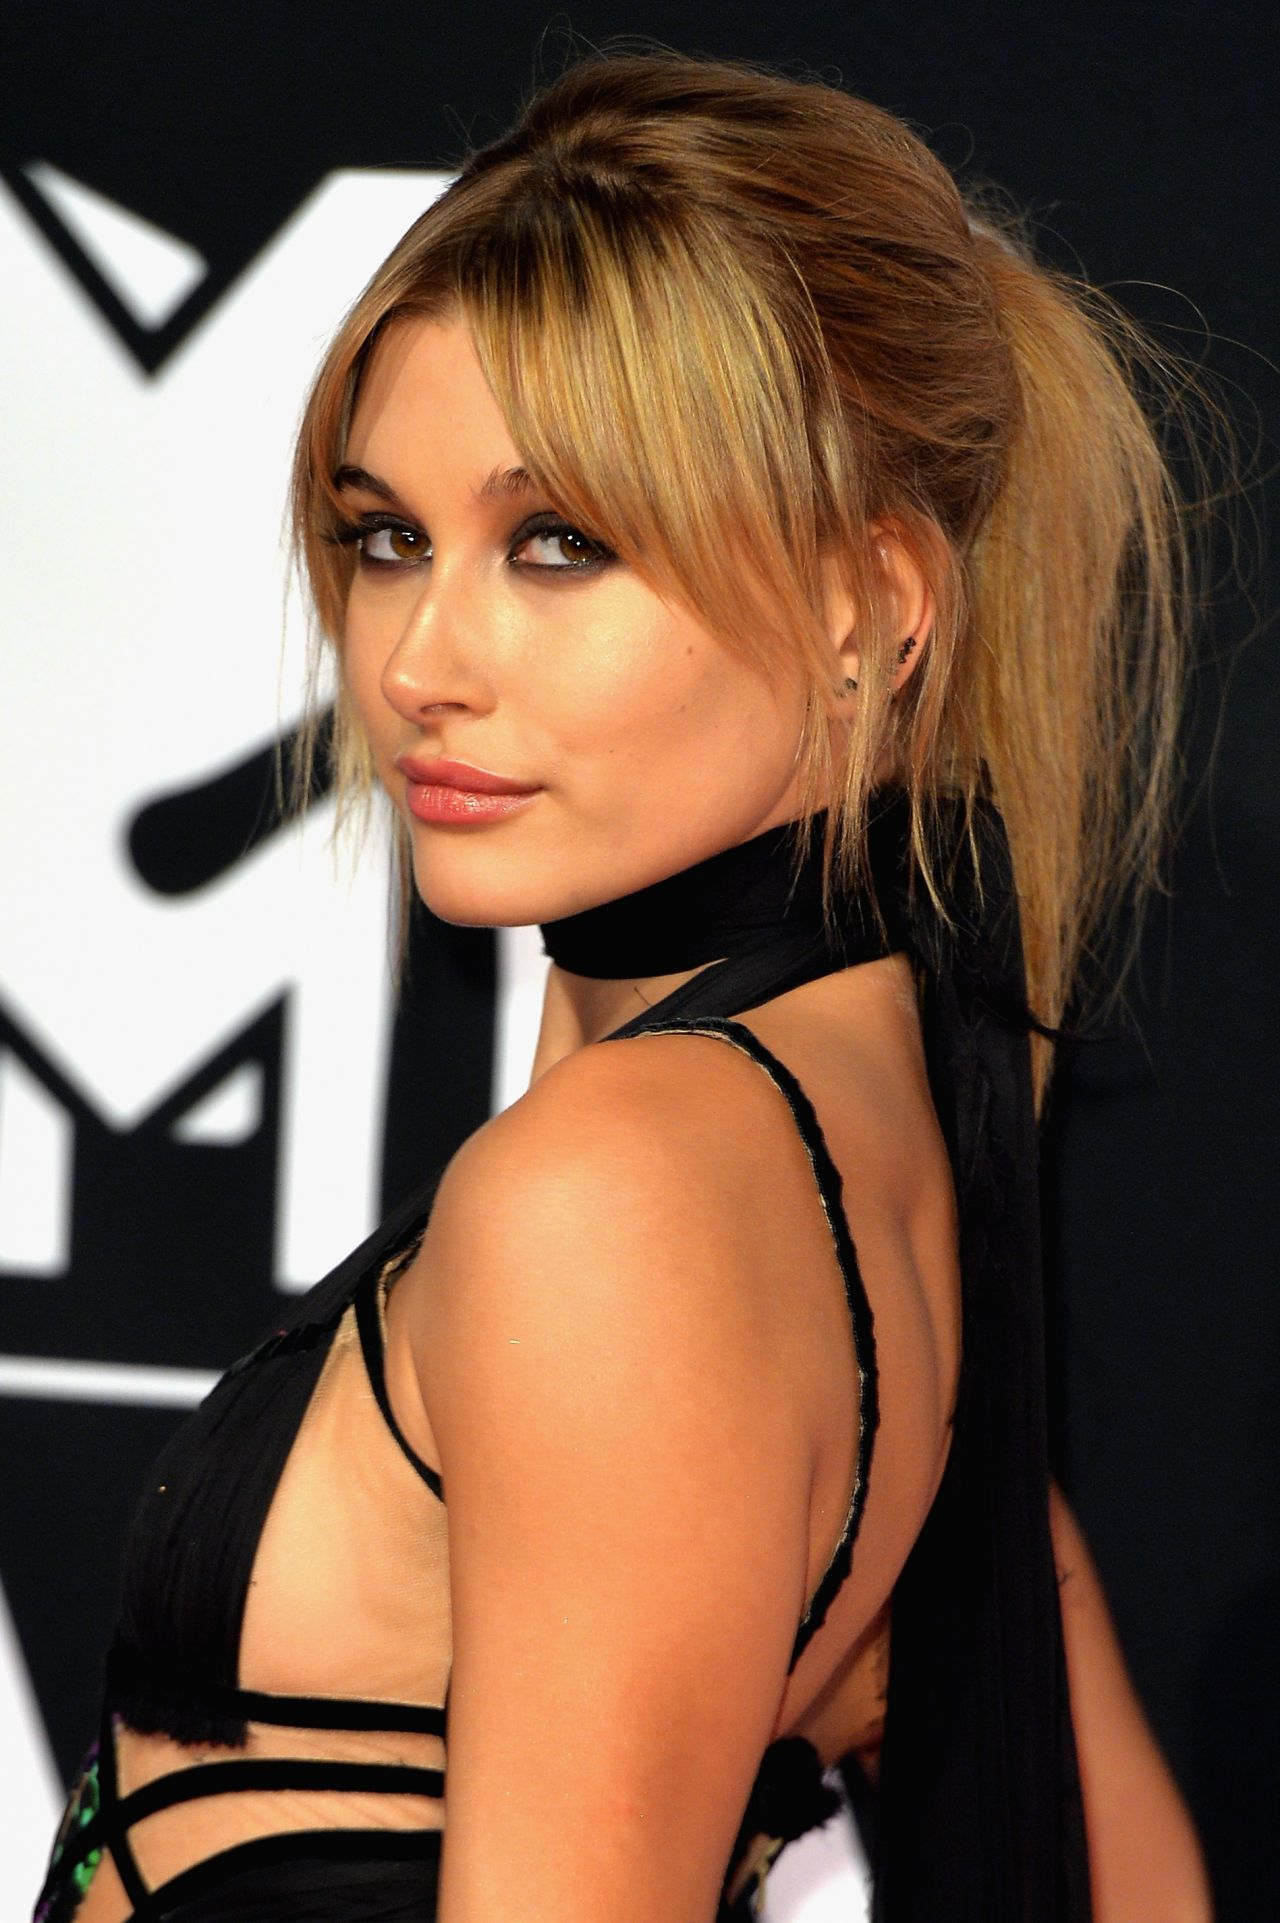 hailey baldwin - photo #25